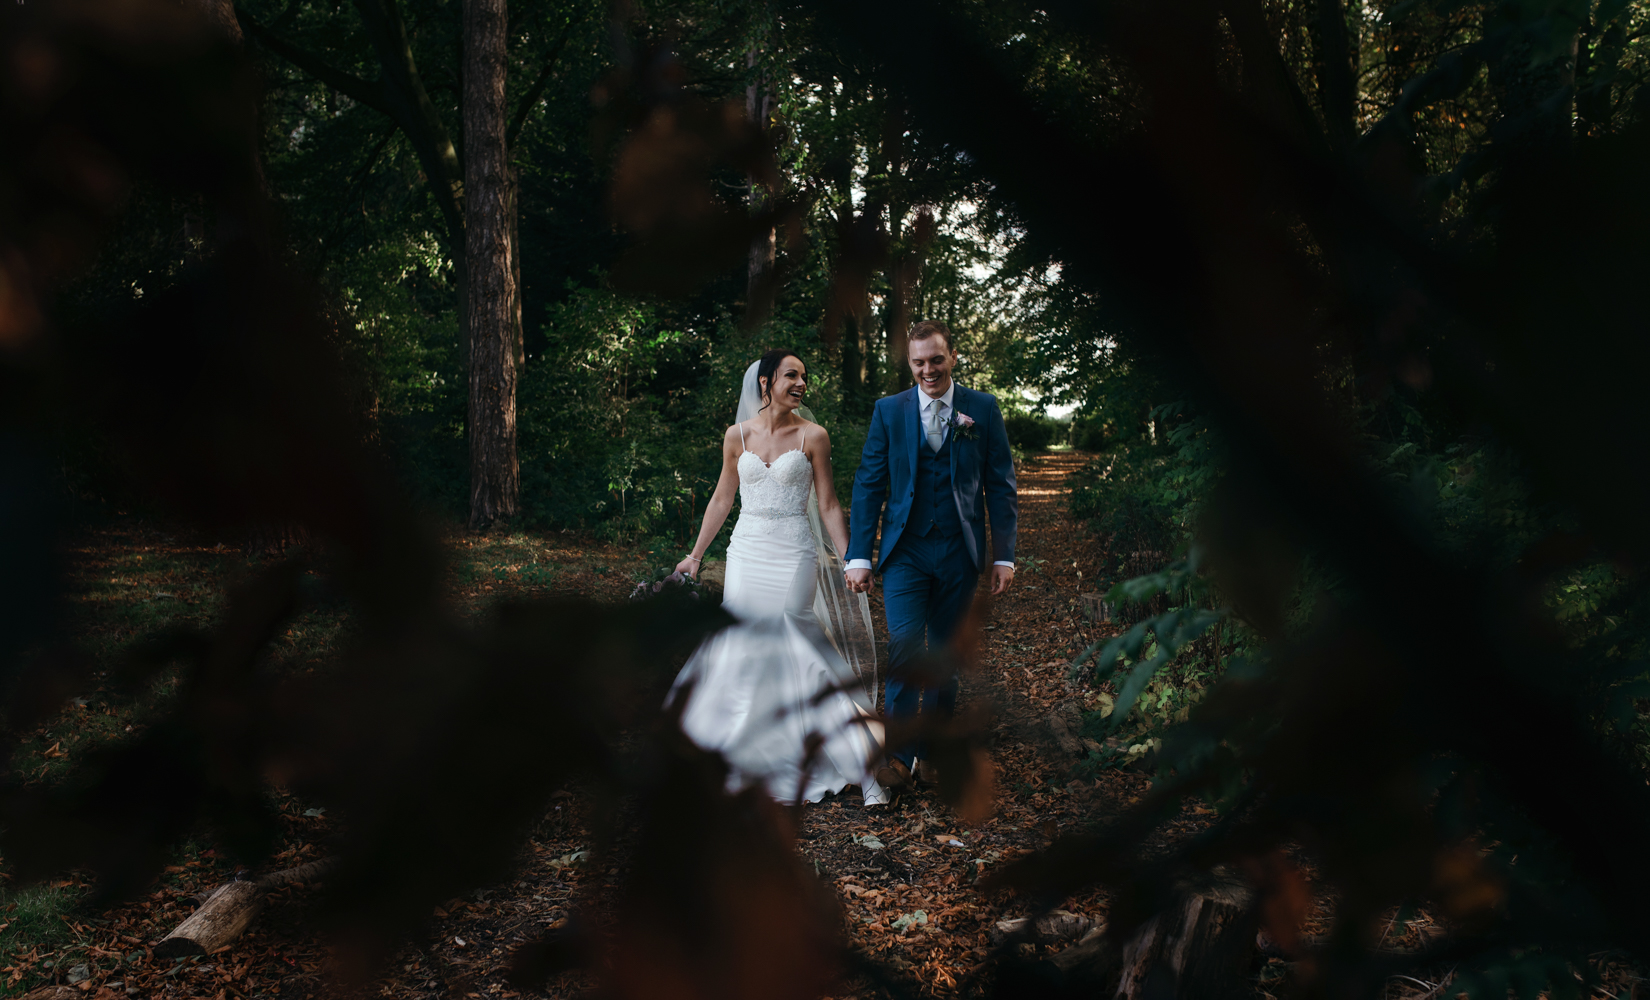 The bride and groom walking in the woods at Inglewood Manor